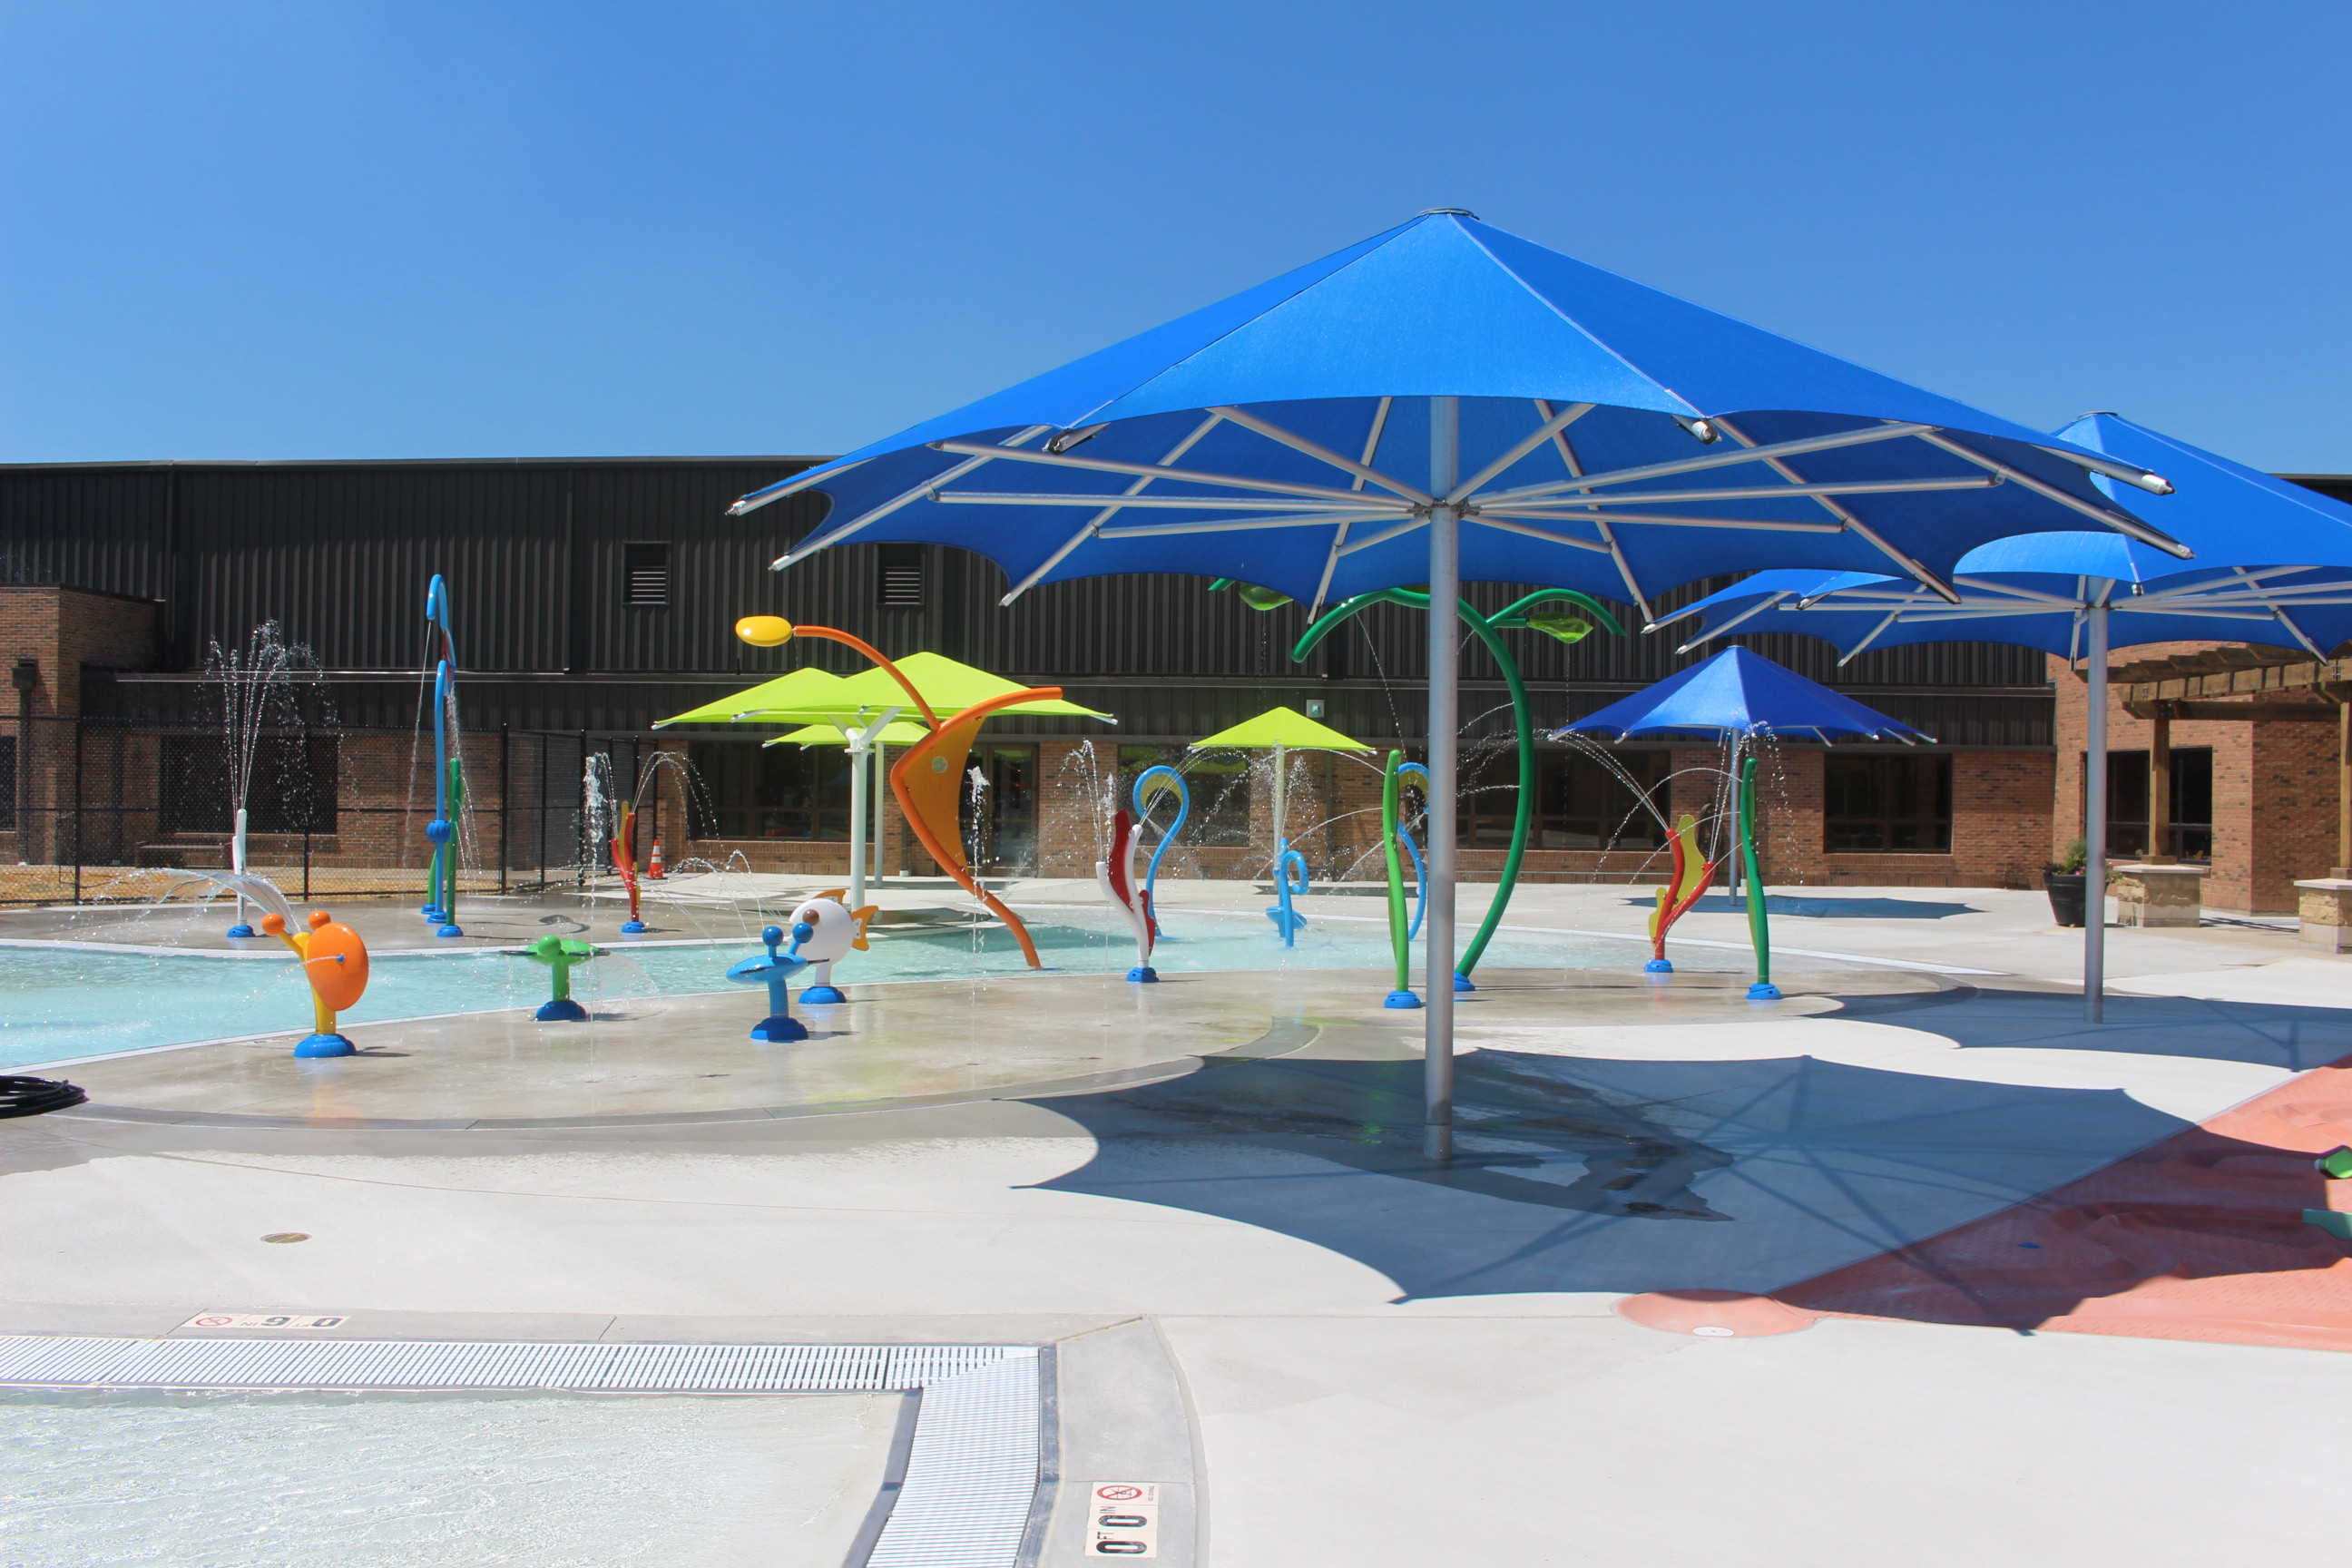 child uses fire house with help from adults